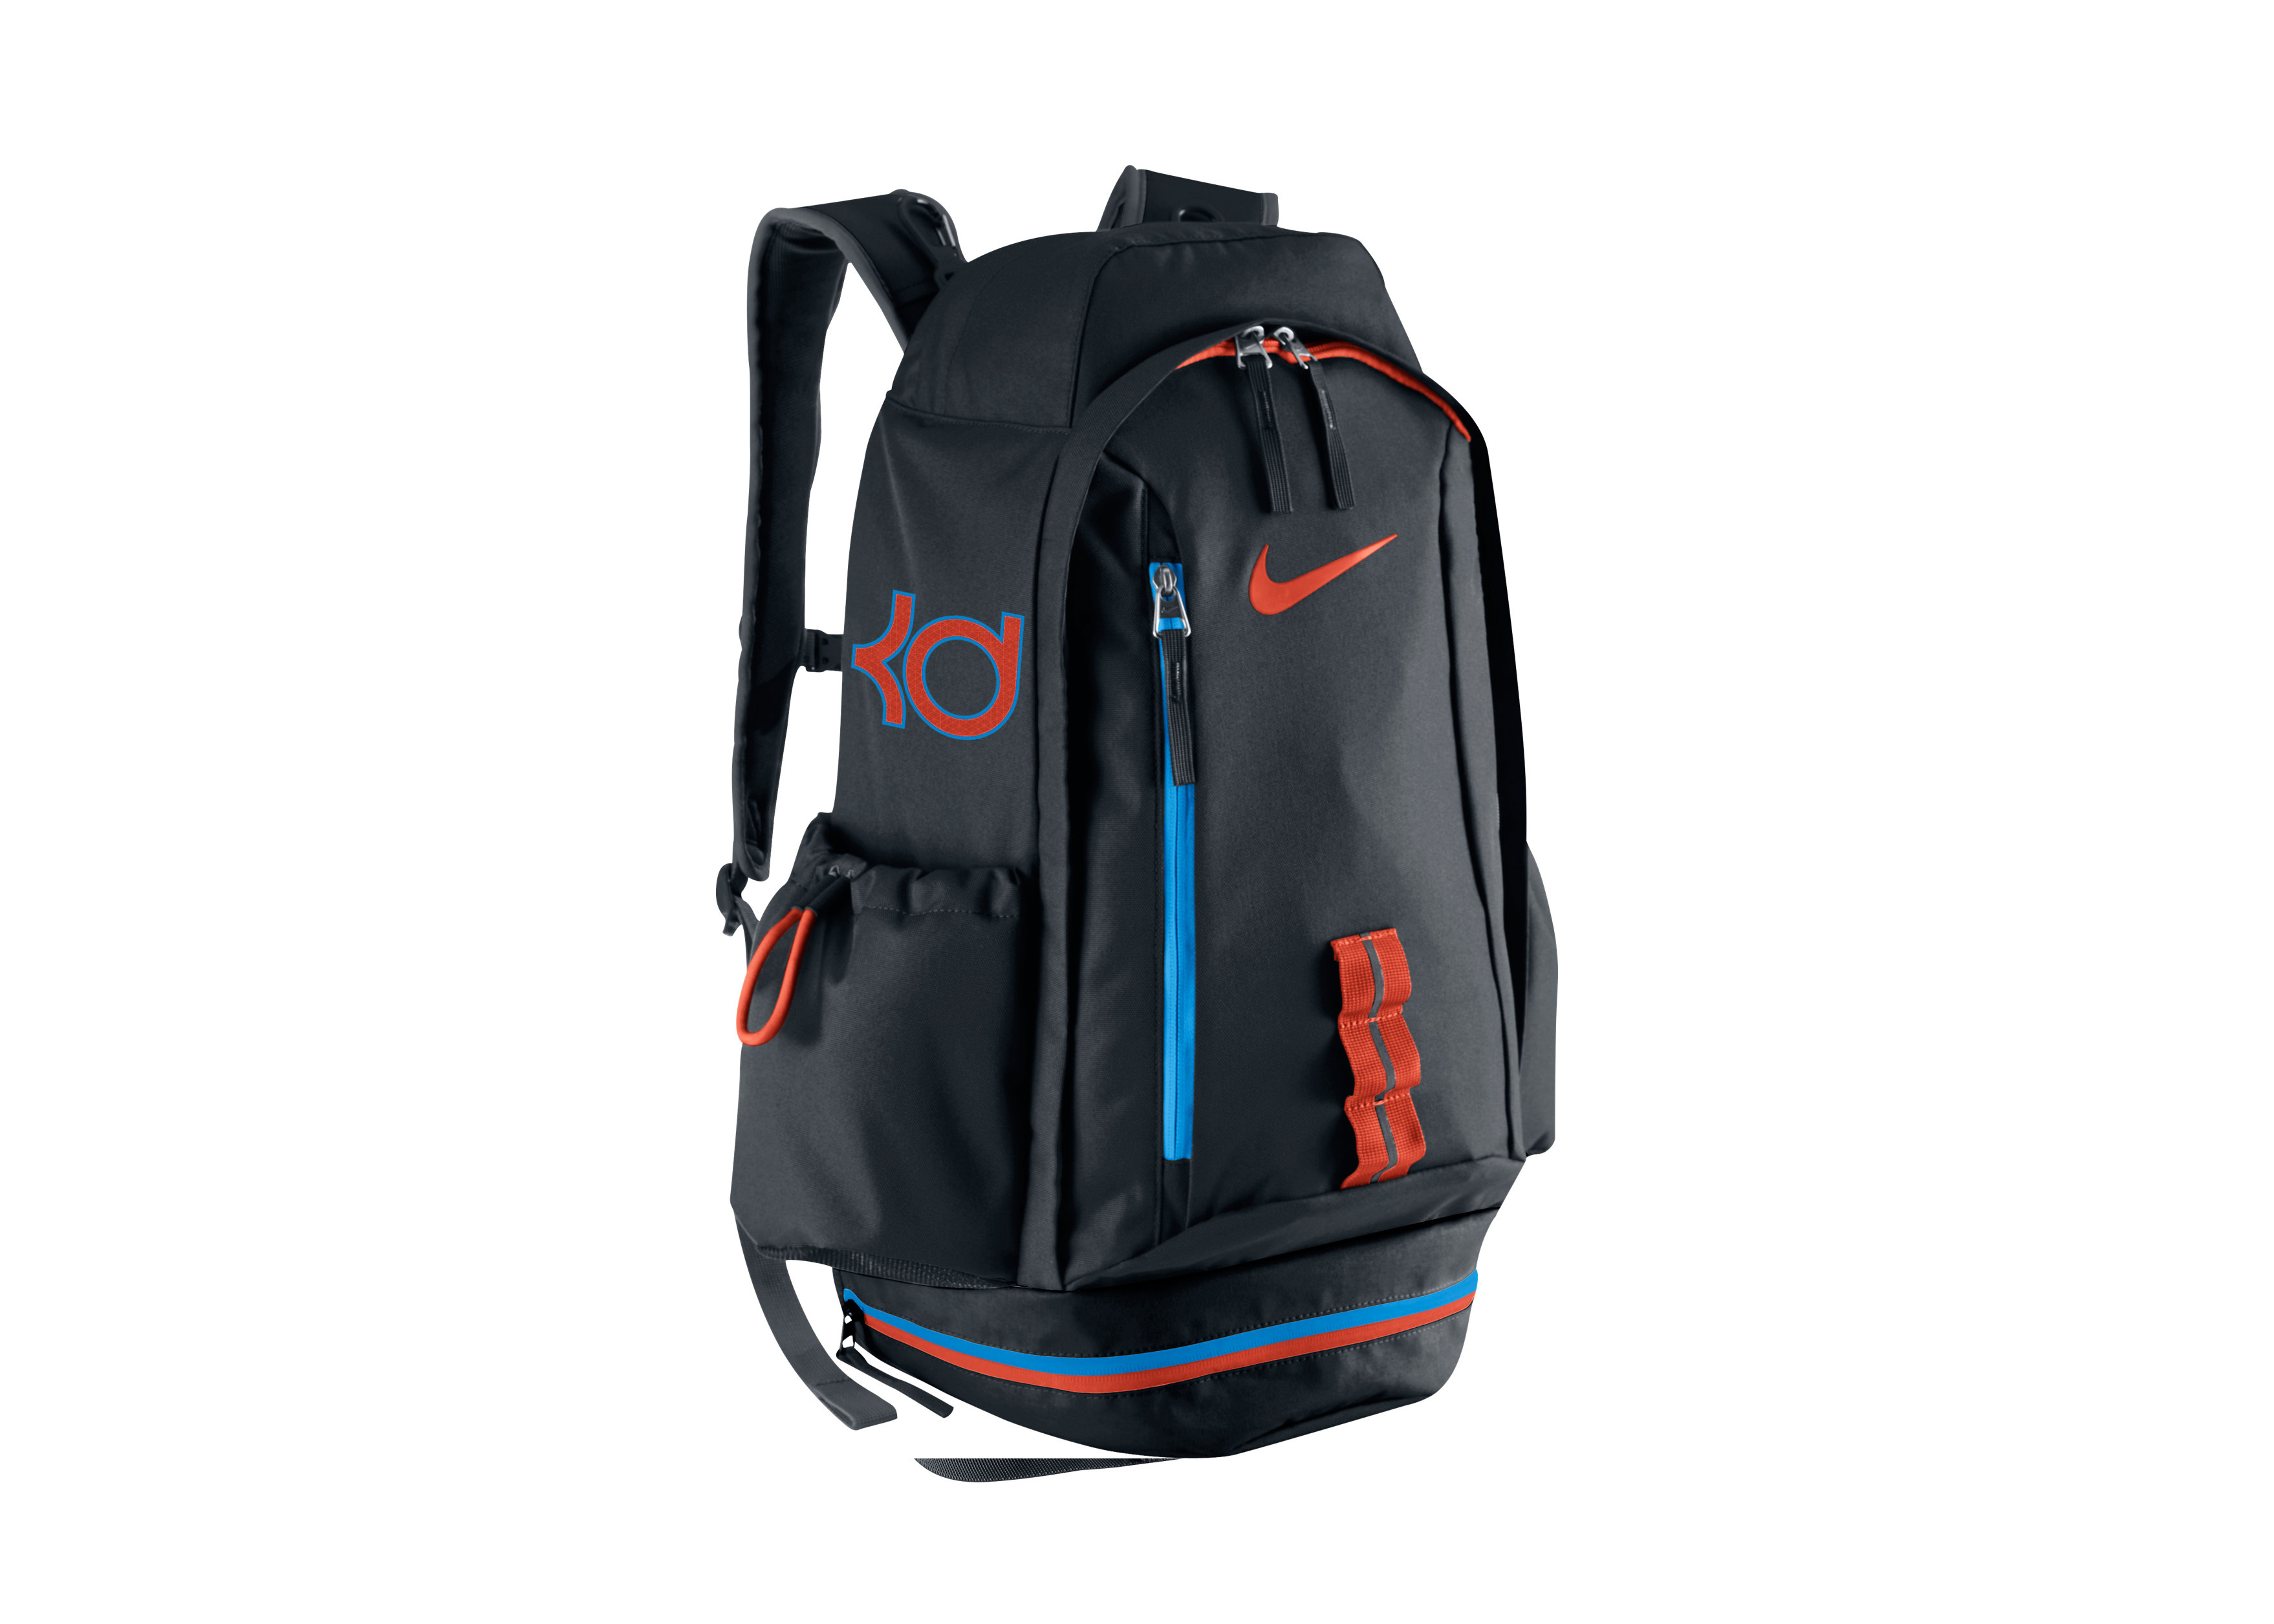 ... kd 7 backpack cheap OFF57% The Largest Catalog Discounts Online nike ... afcfd93e5c081